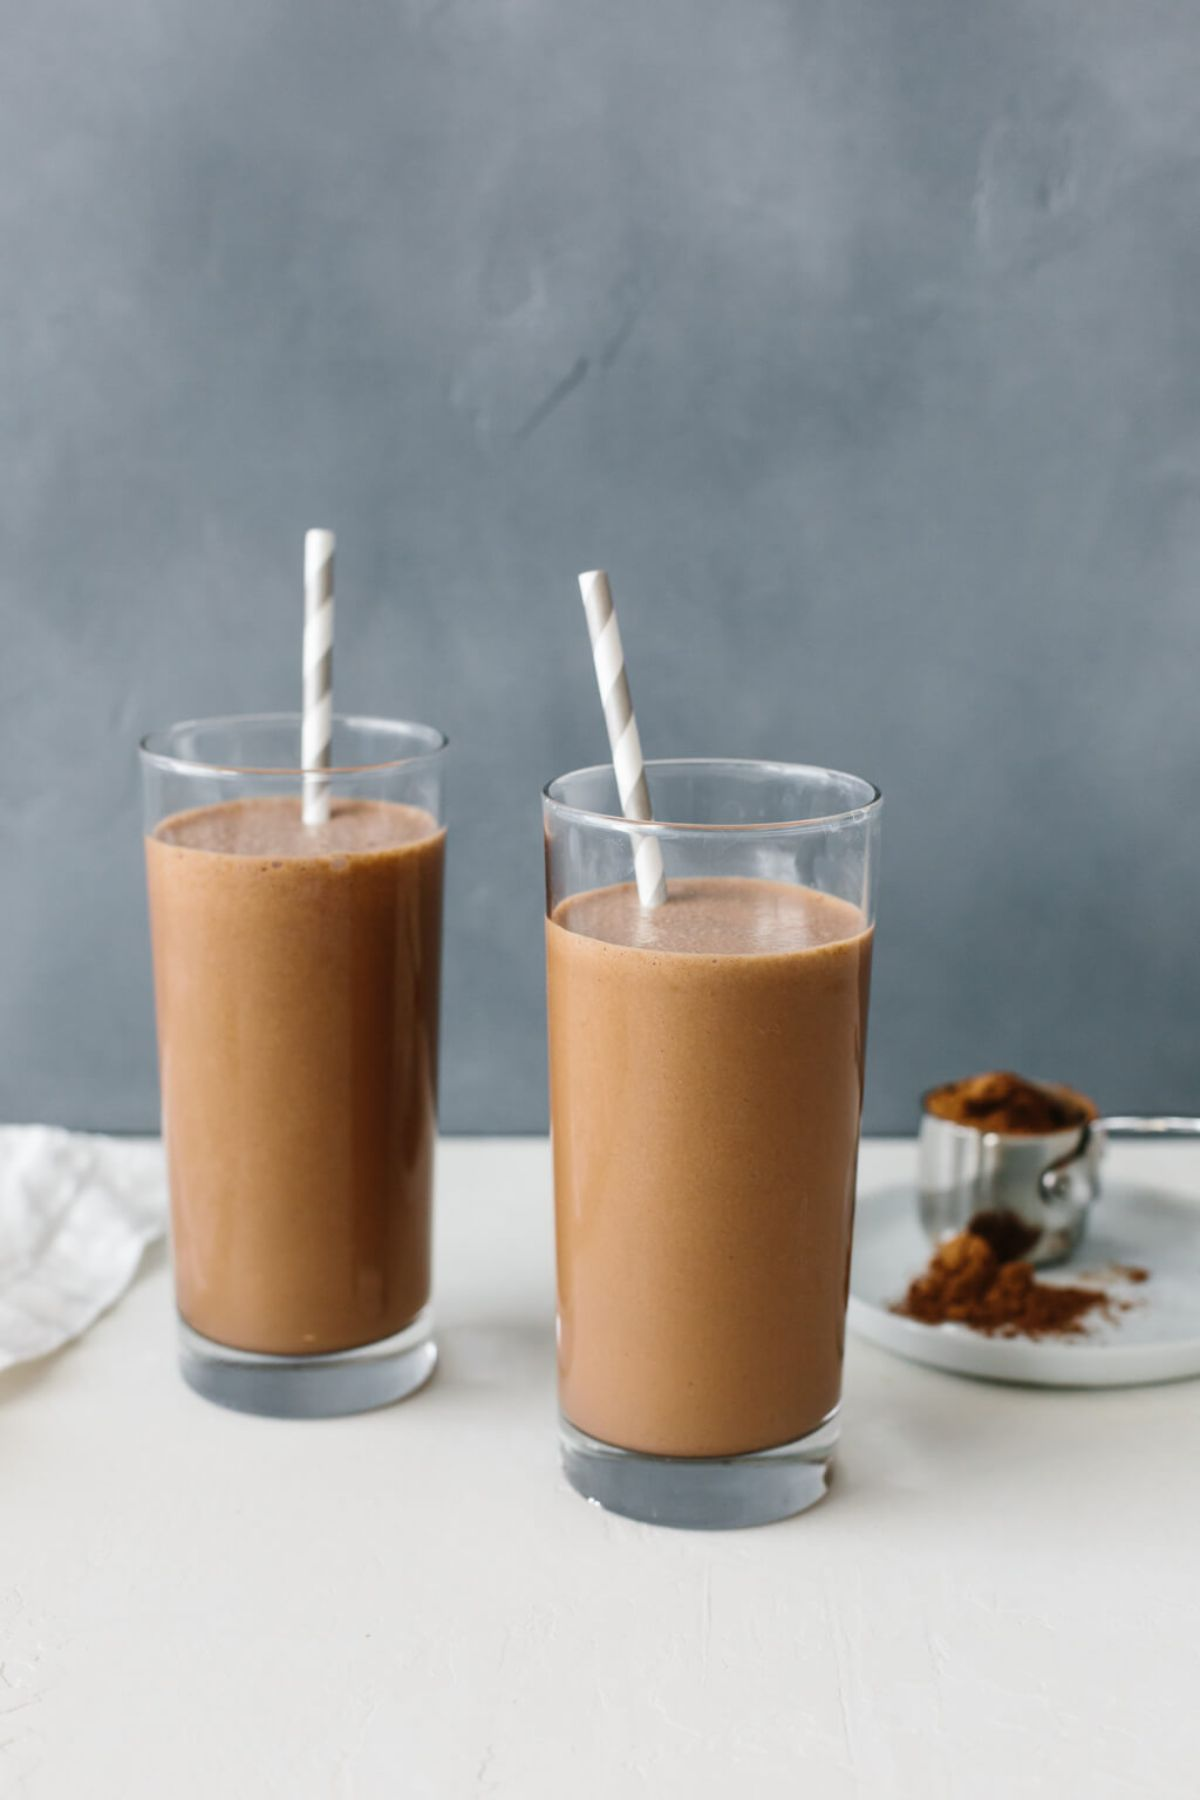 2 glasses of chocolate smoothie with straws sticking out